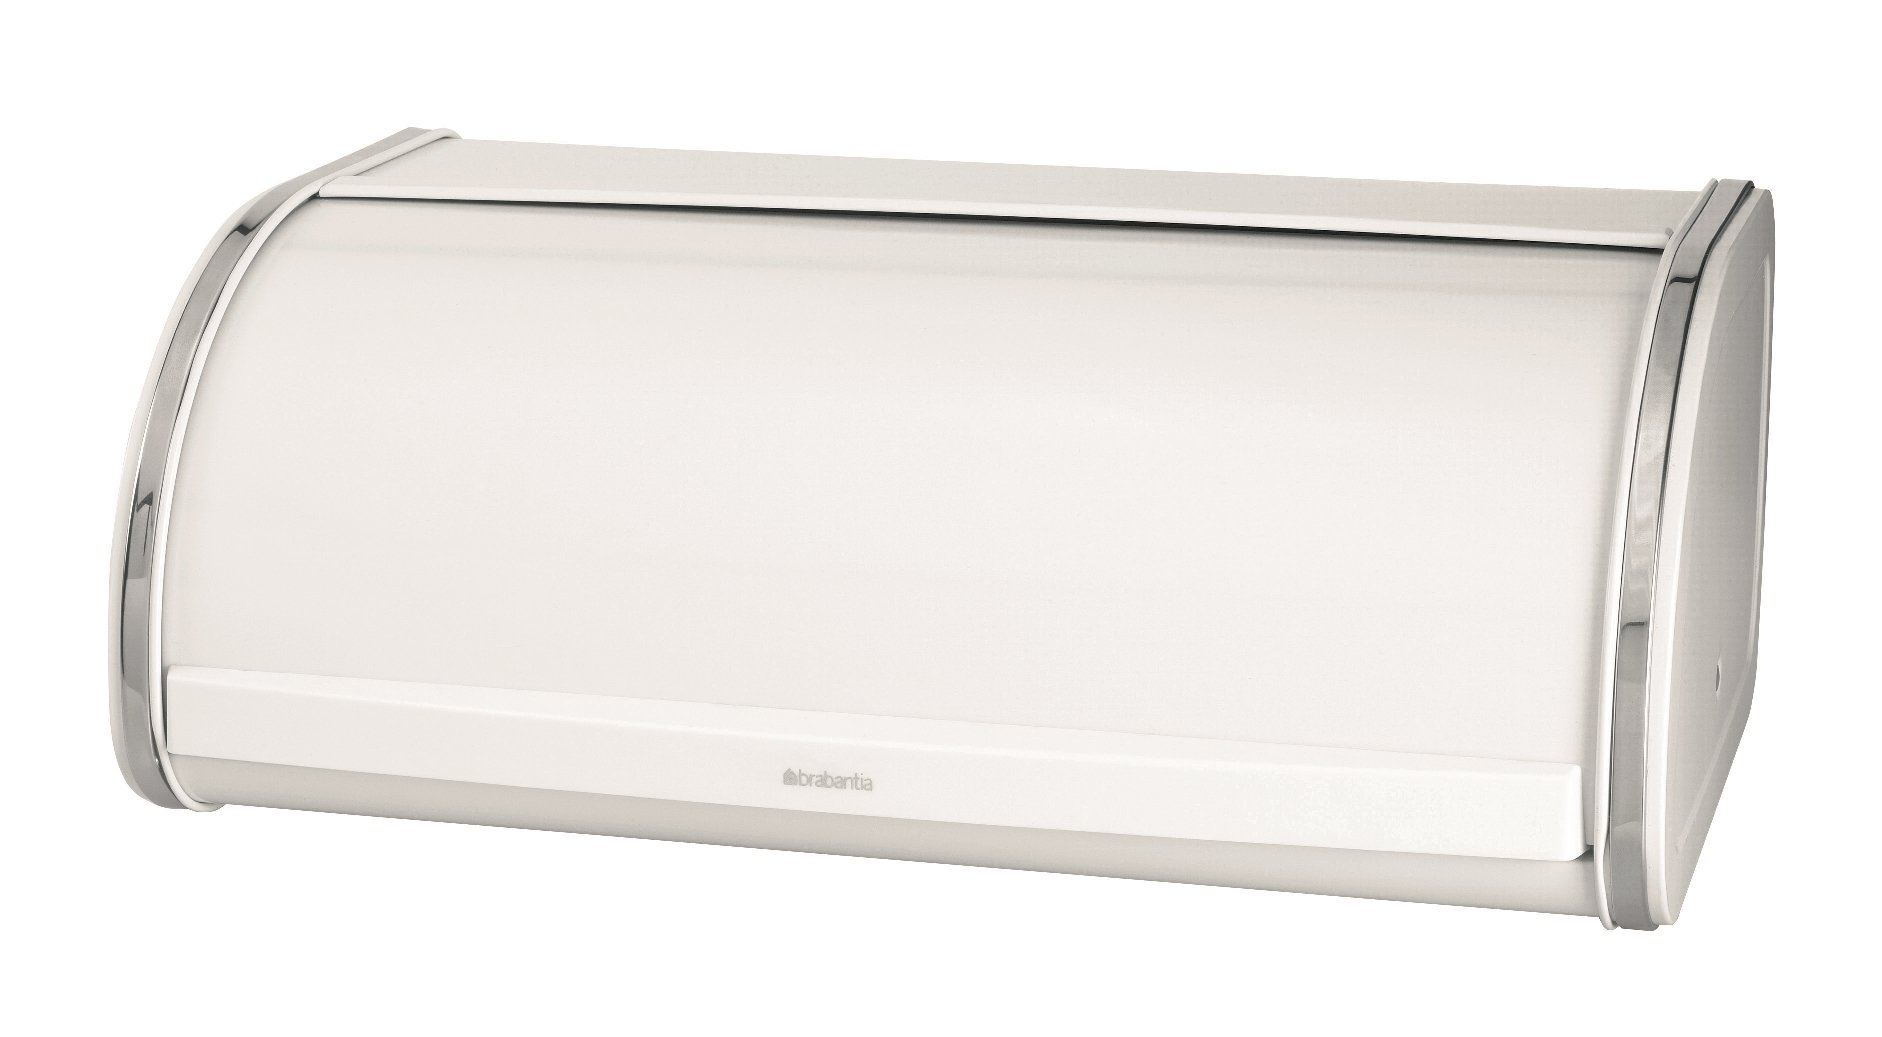 Brabantia Roll Top Bread Bin In White At Barnitts Online Store Uk Barnitts